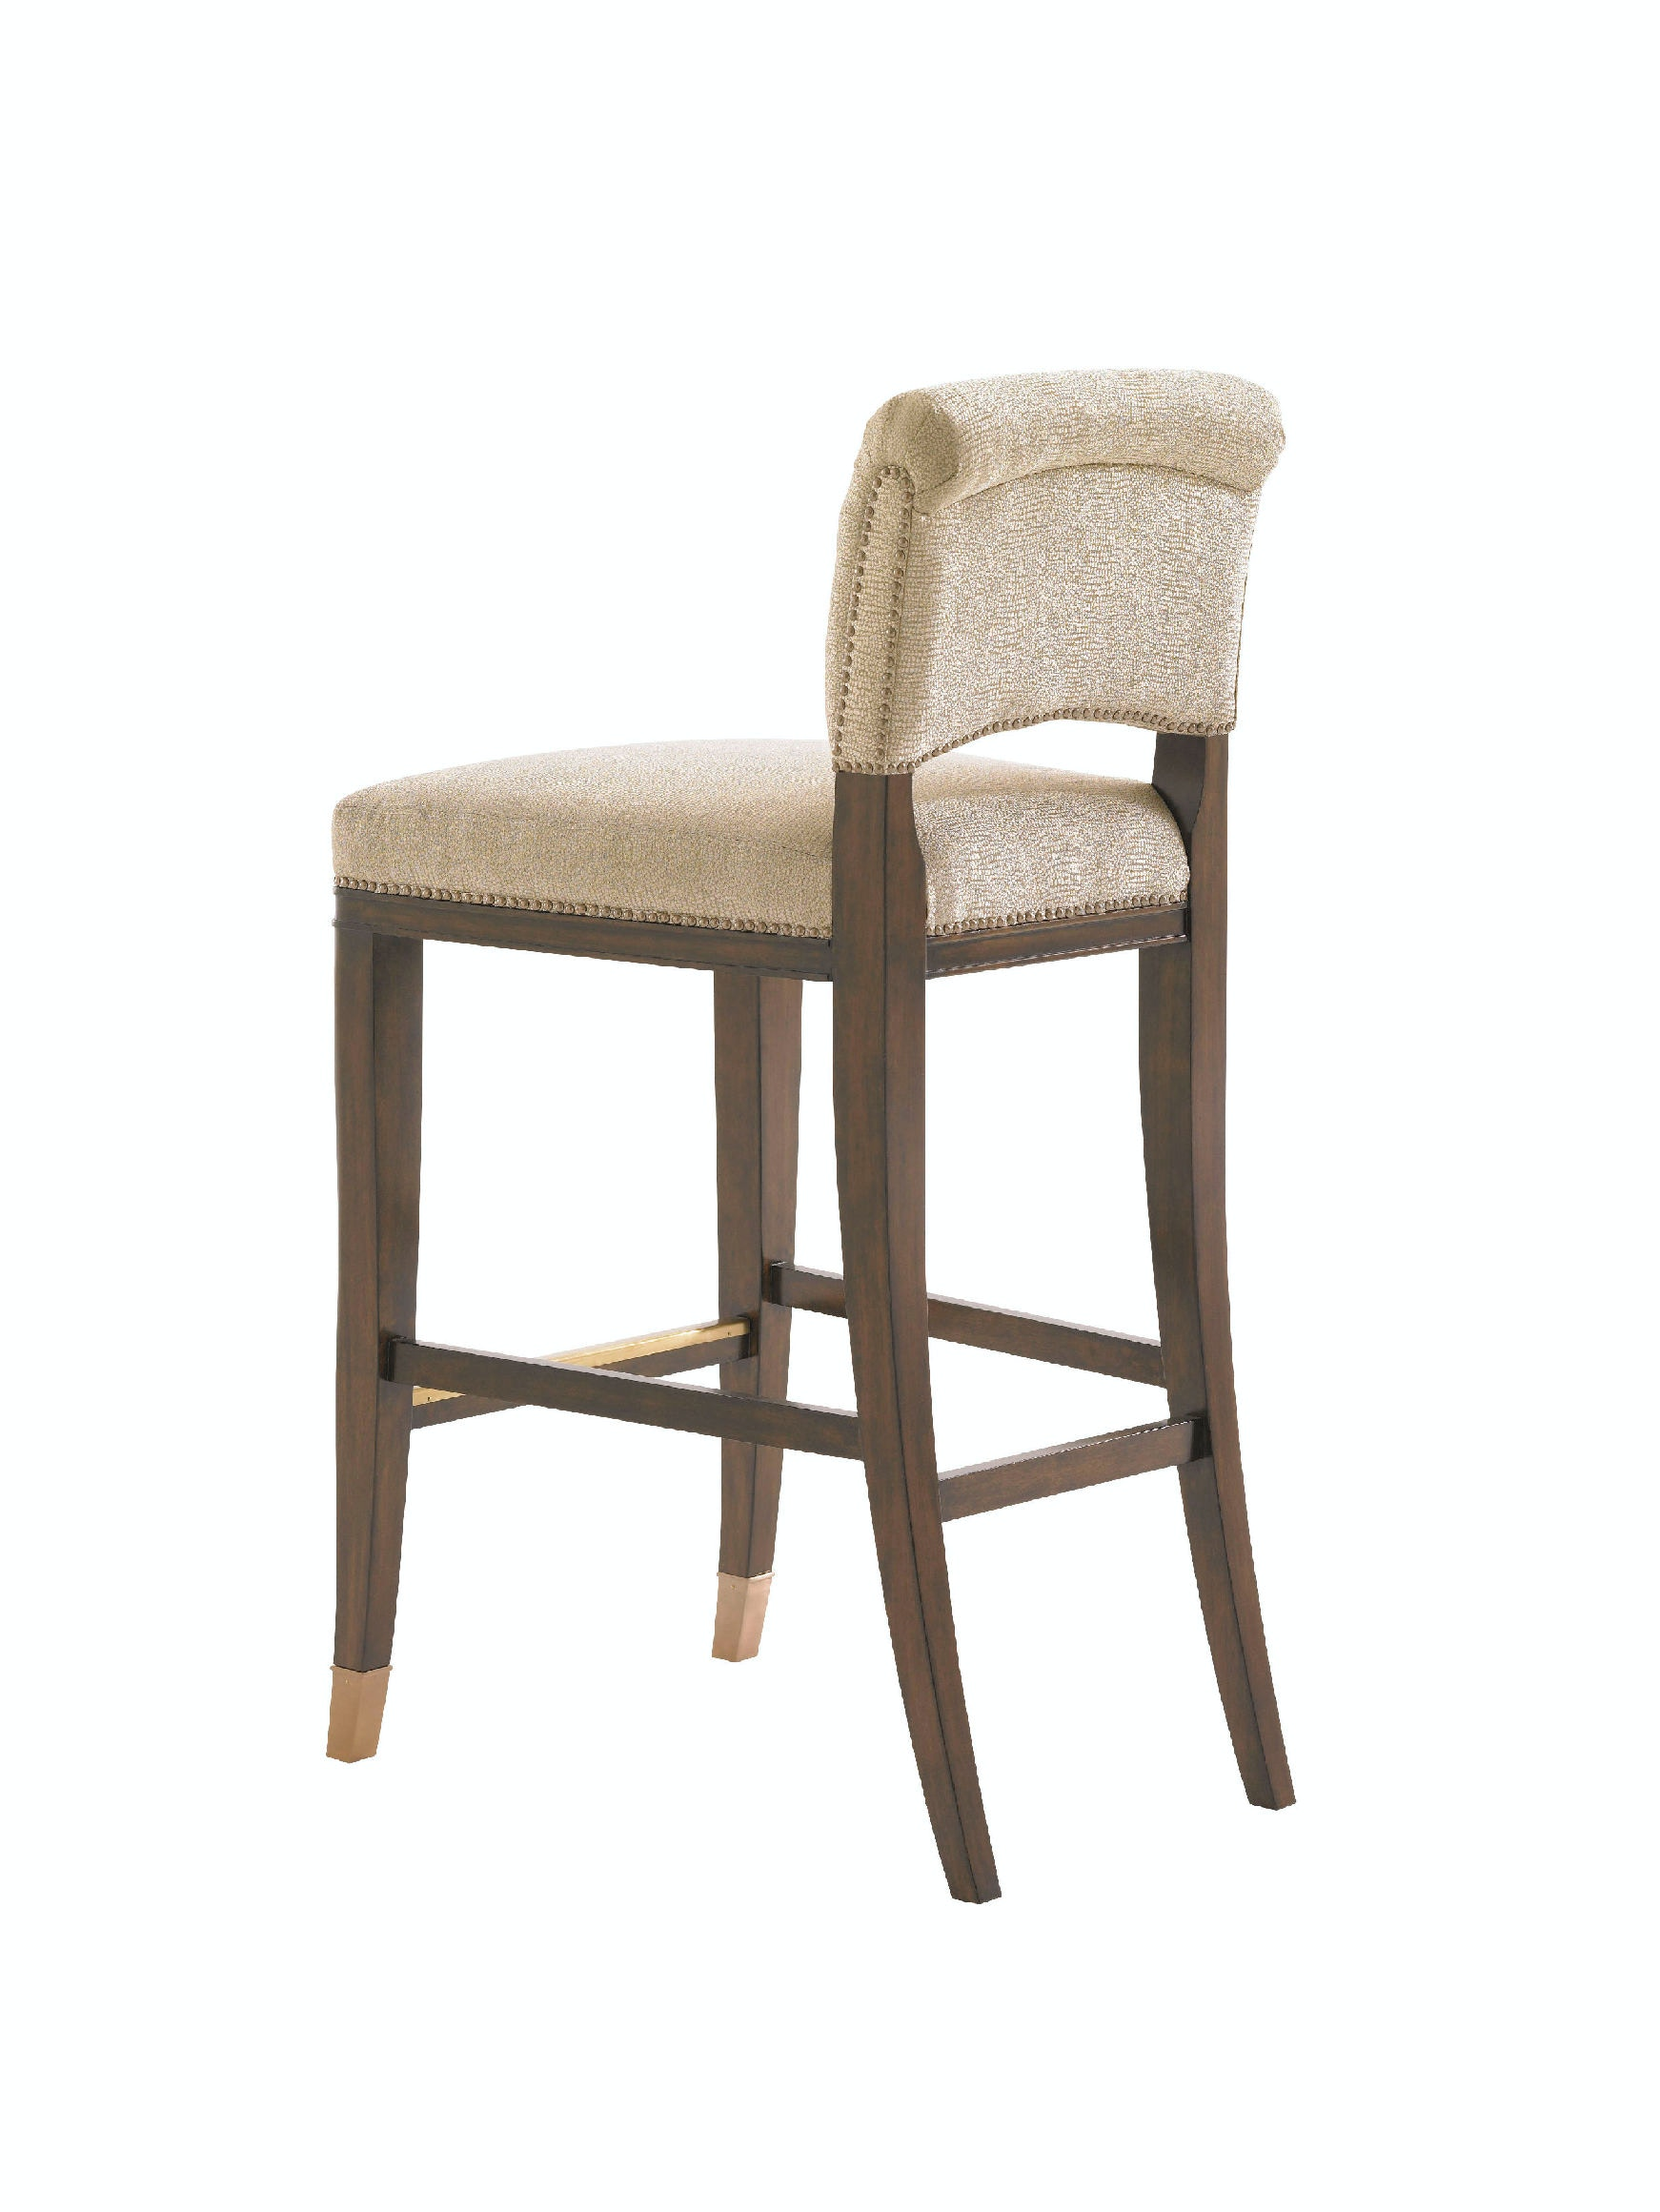 Lexington Dining Room LaSalle Bar Stool 706 816 01 Blockers